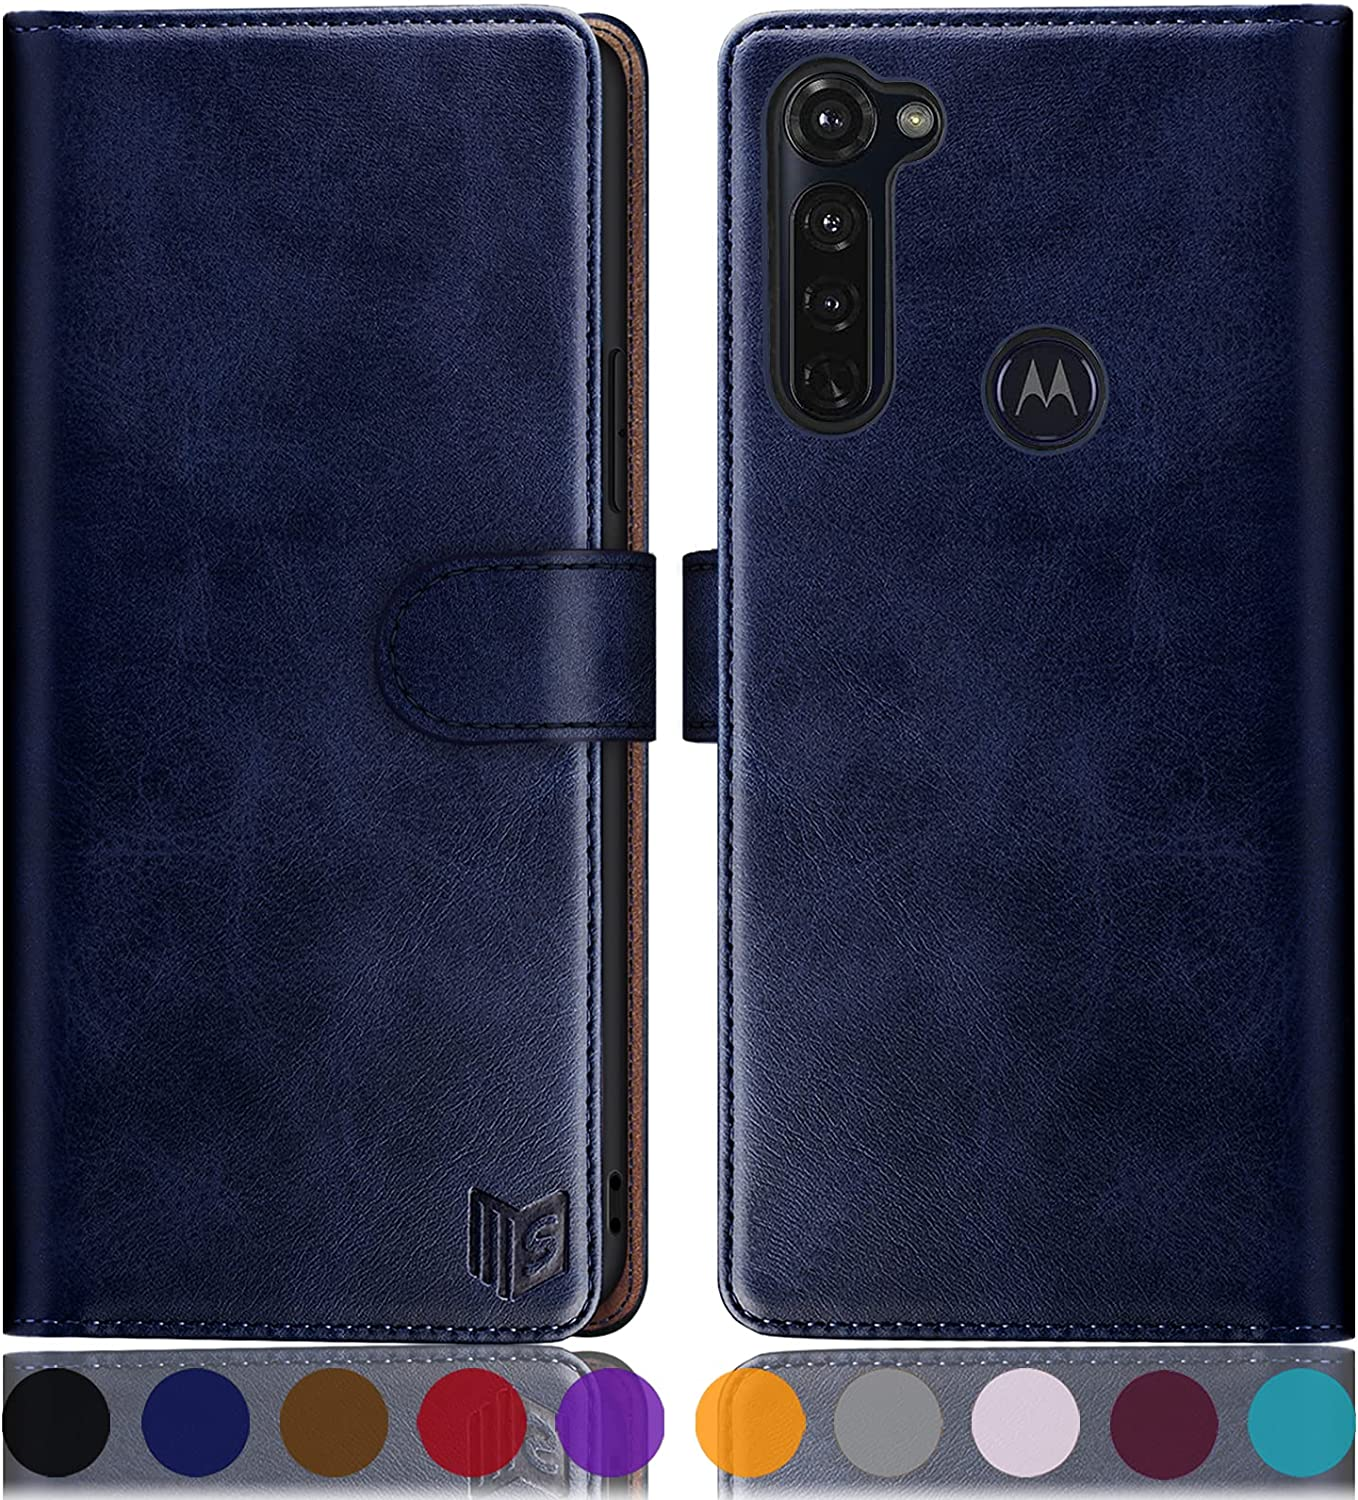 SUANPOT for Motorola Moto G Stylus 2020(Non 2021 Version) with RFID Blocking Leather Wallet case Credit Card Holder,Flip Folio Book Phone case Cover Women Men for Moto G Stylus case Wallet (Blue)